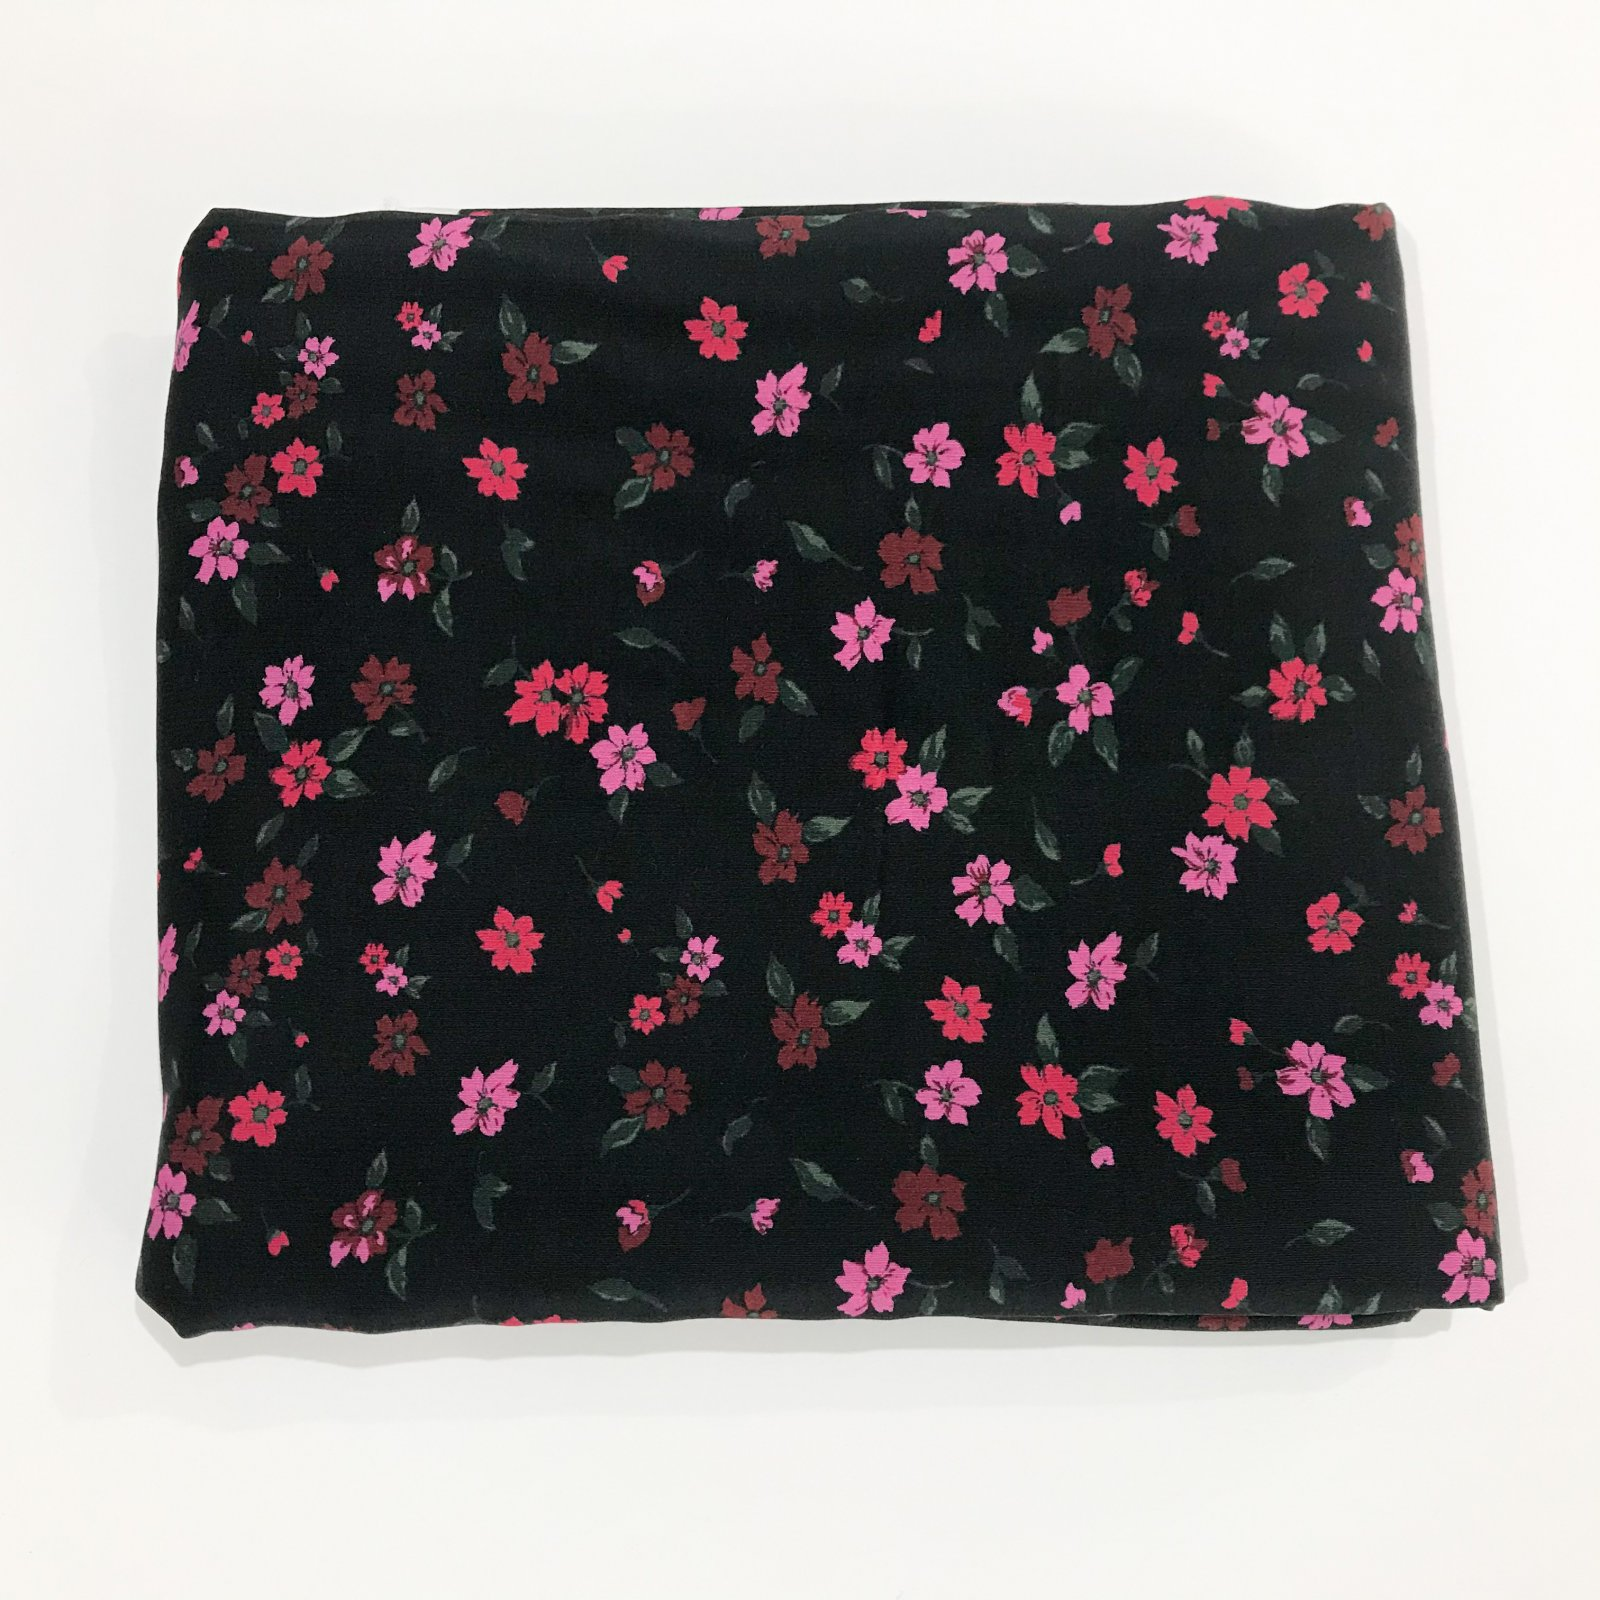 1 3/4 yards - Rayon - Black with small Red and Pink Flowers